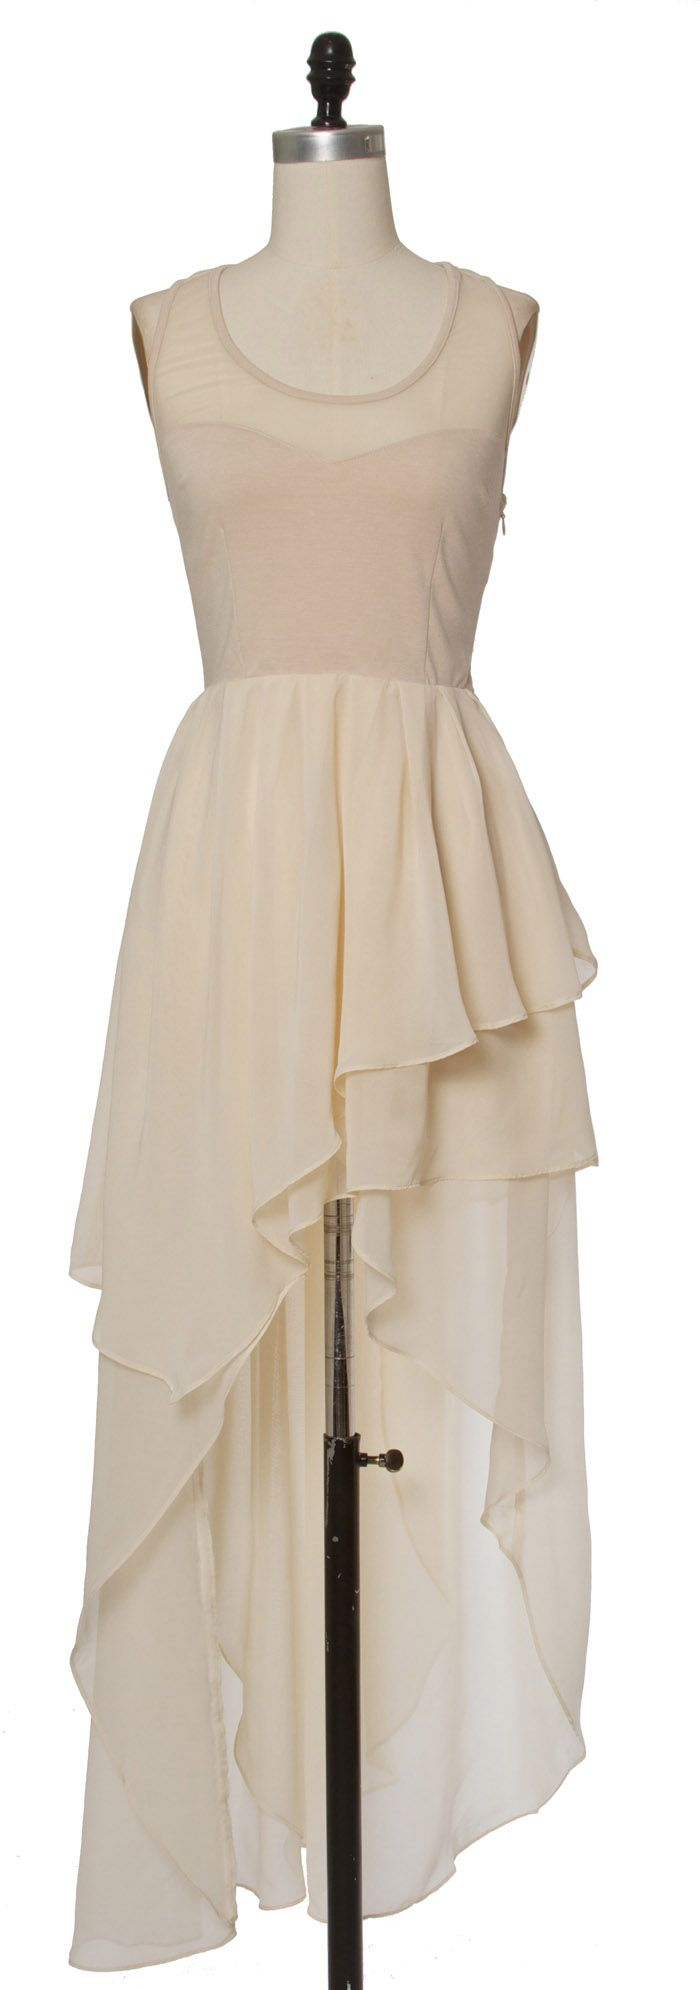 Trendy & Cute Clothing - Ark & Co - Waves Of Nude Dress - chloelovescharlie.com | $87.00